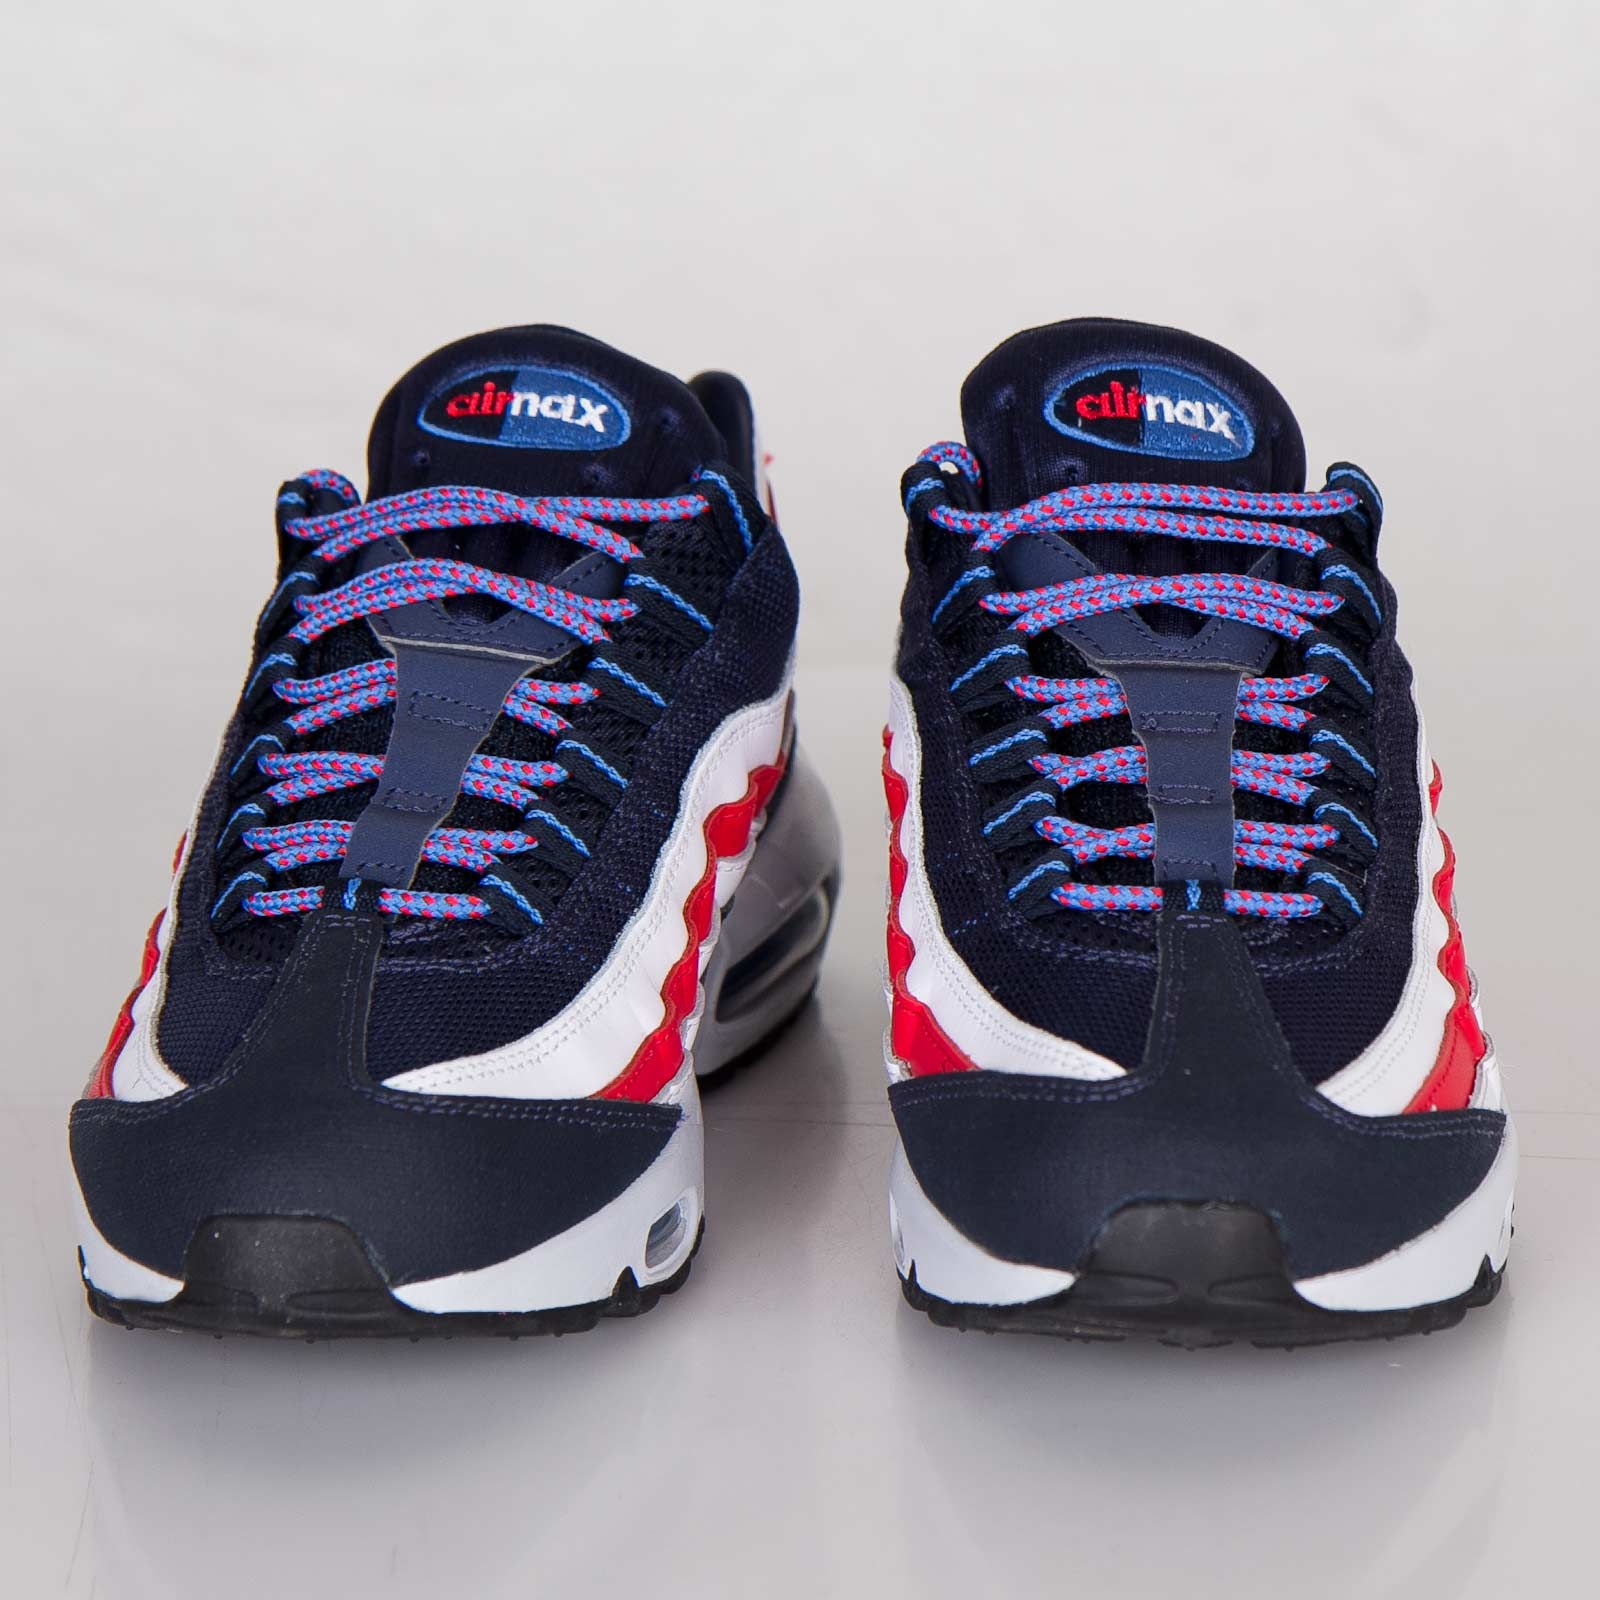 new concept e513d 65db6 Nike Air Max 95 City QS - 667637-400 - Sneakersnstuff | sneakers &  streetwear online since 1999